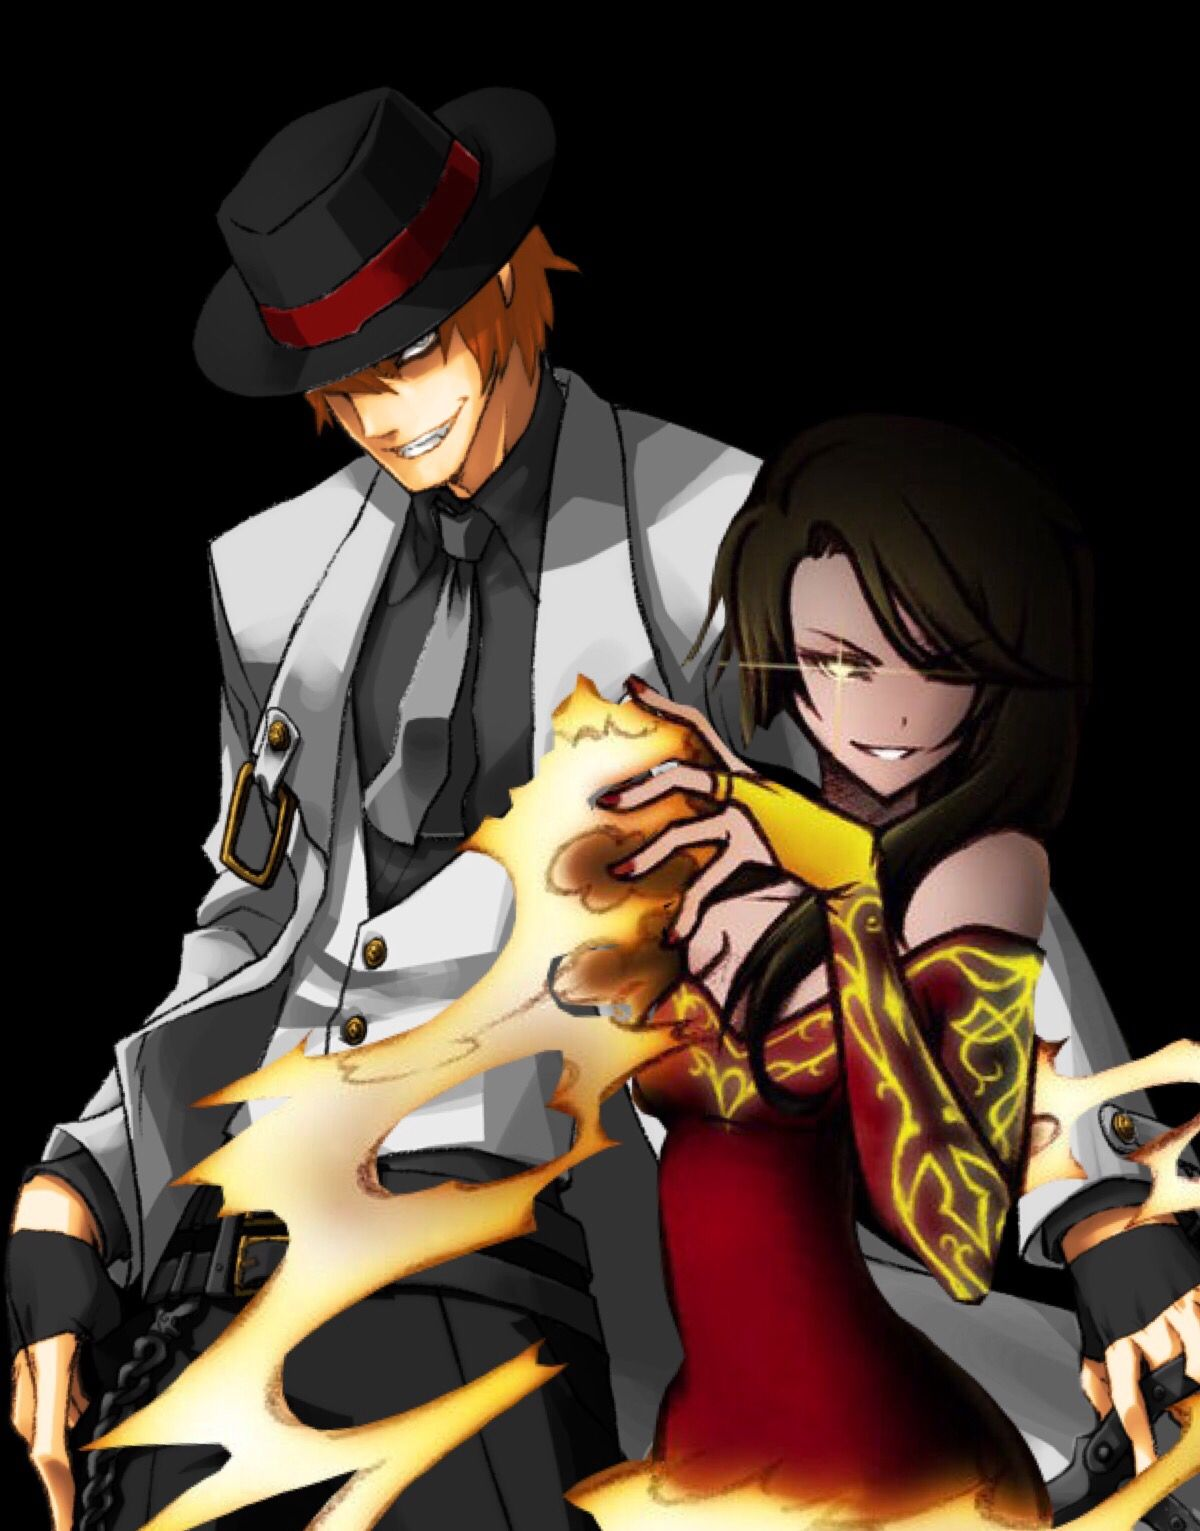 Roman And Cinder I Ship Them So Much Is It Just Me Let Me Know Rwby Rwby Fanart Anime